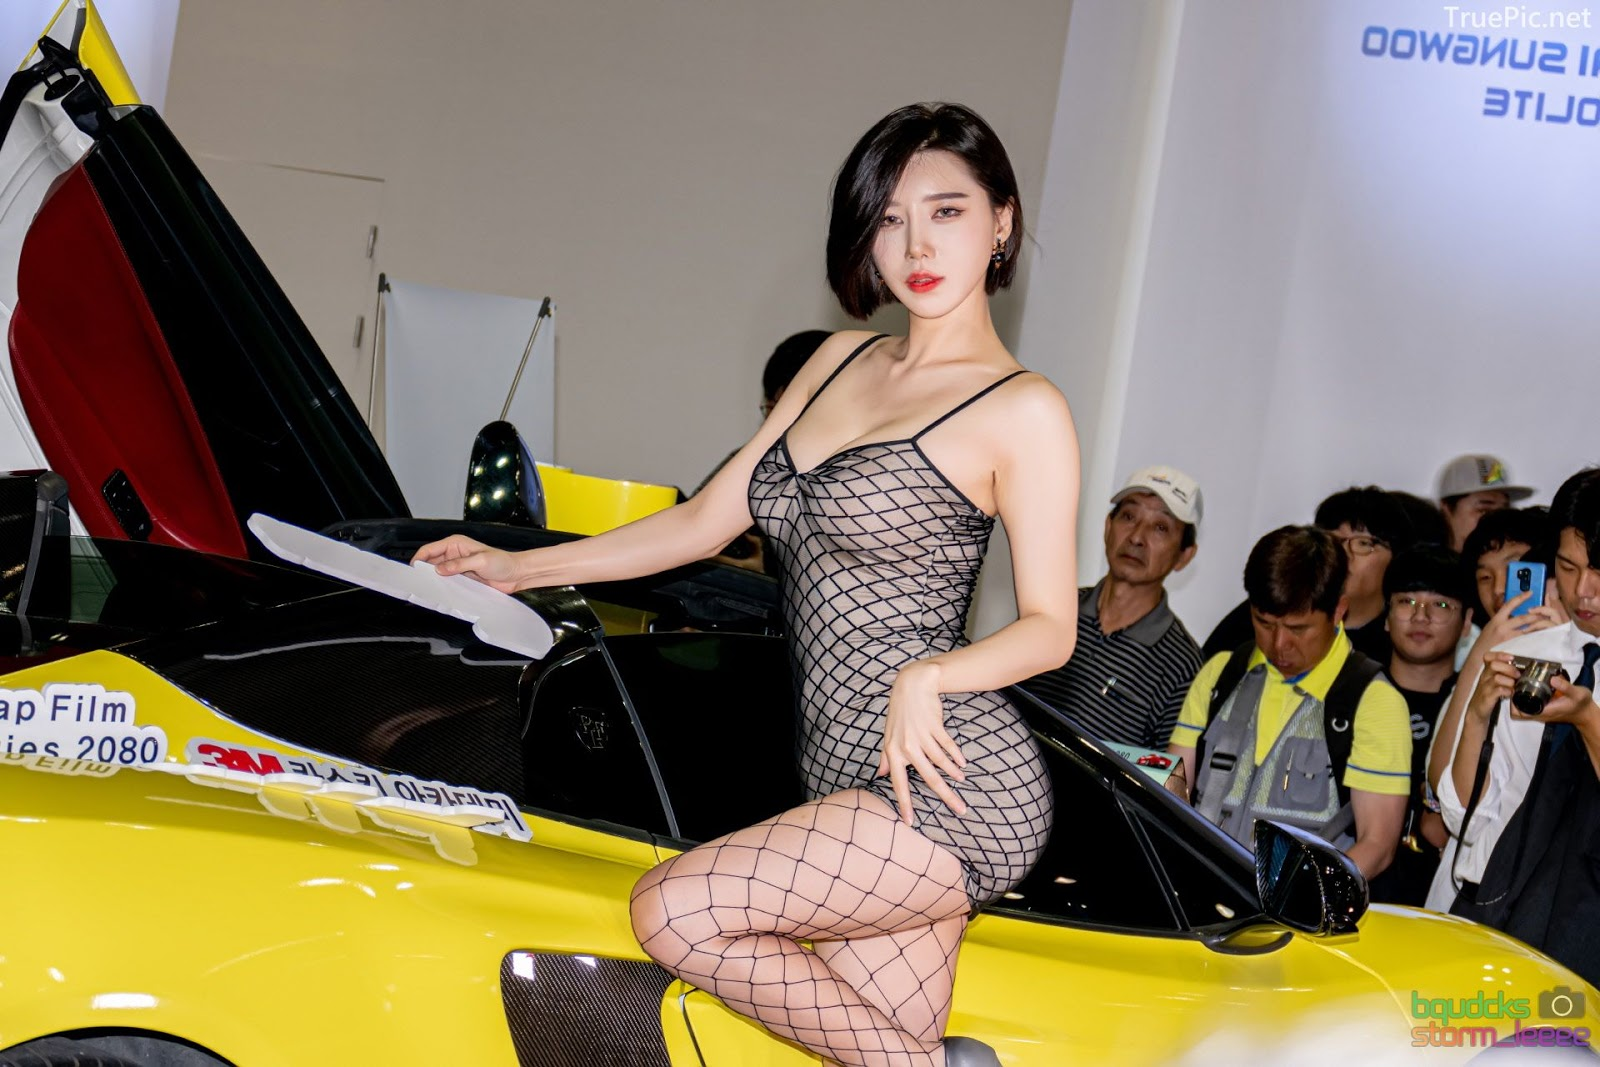 Korean Racing Model - Song Jooa - Seoul Auto Salon 2019 - Picture 7